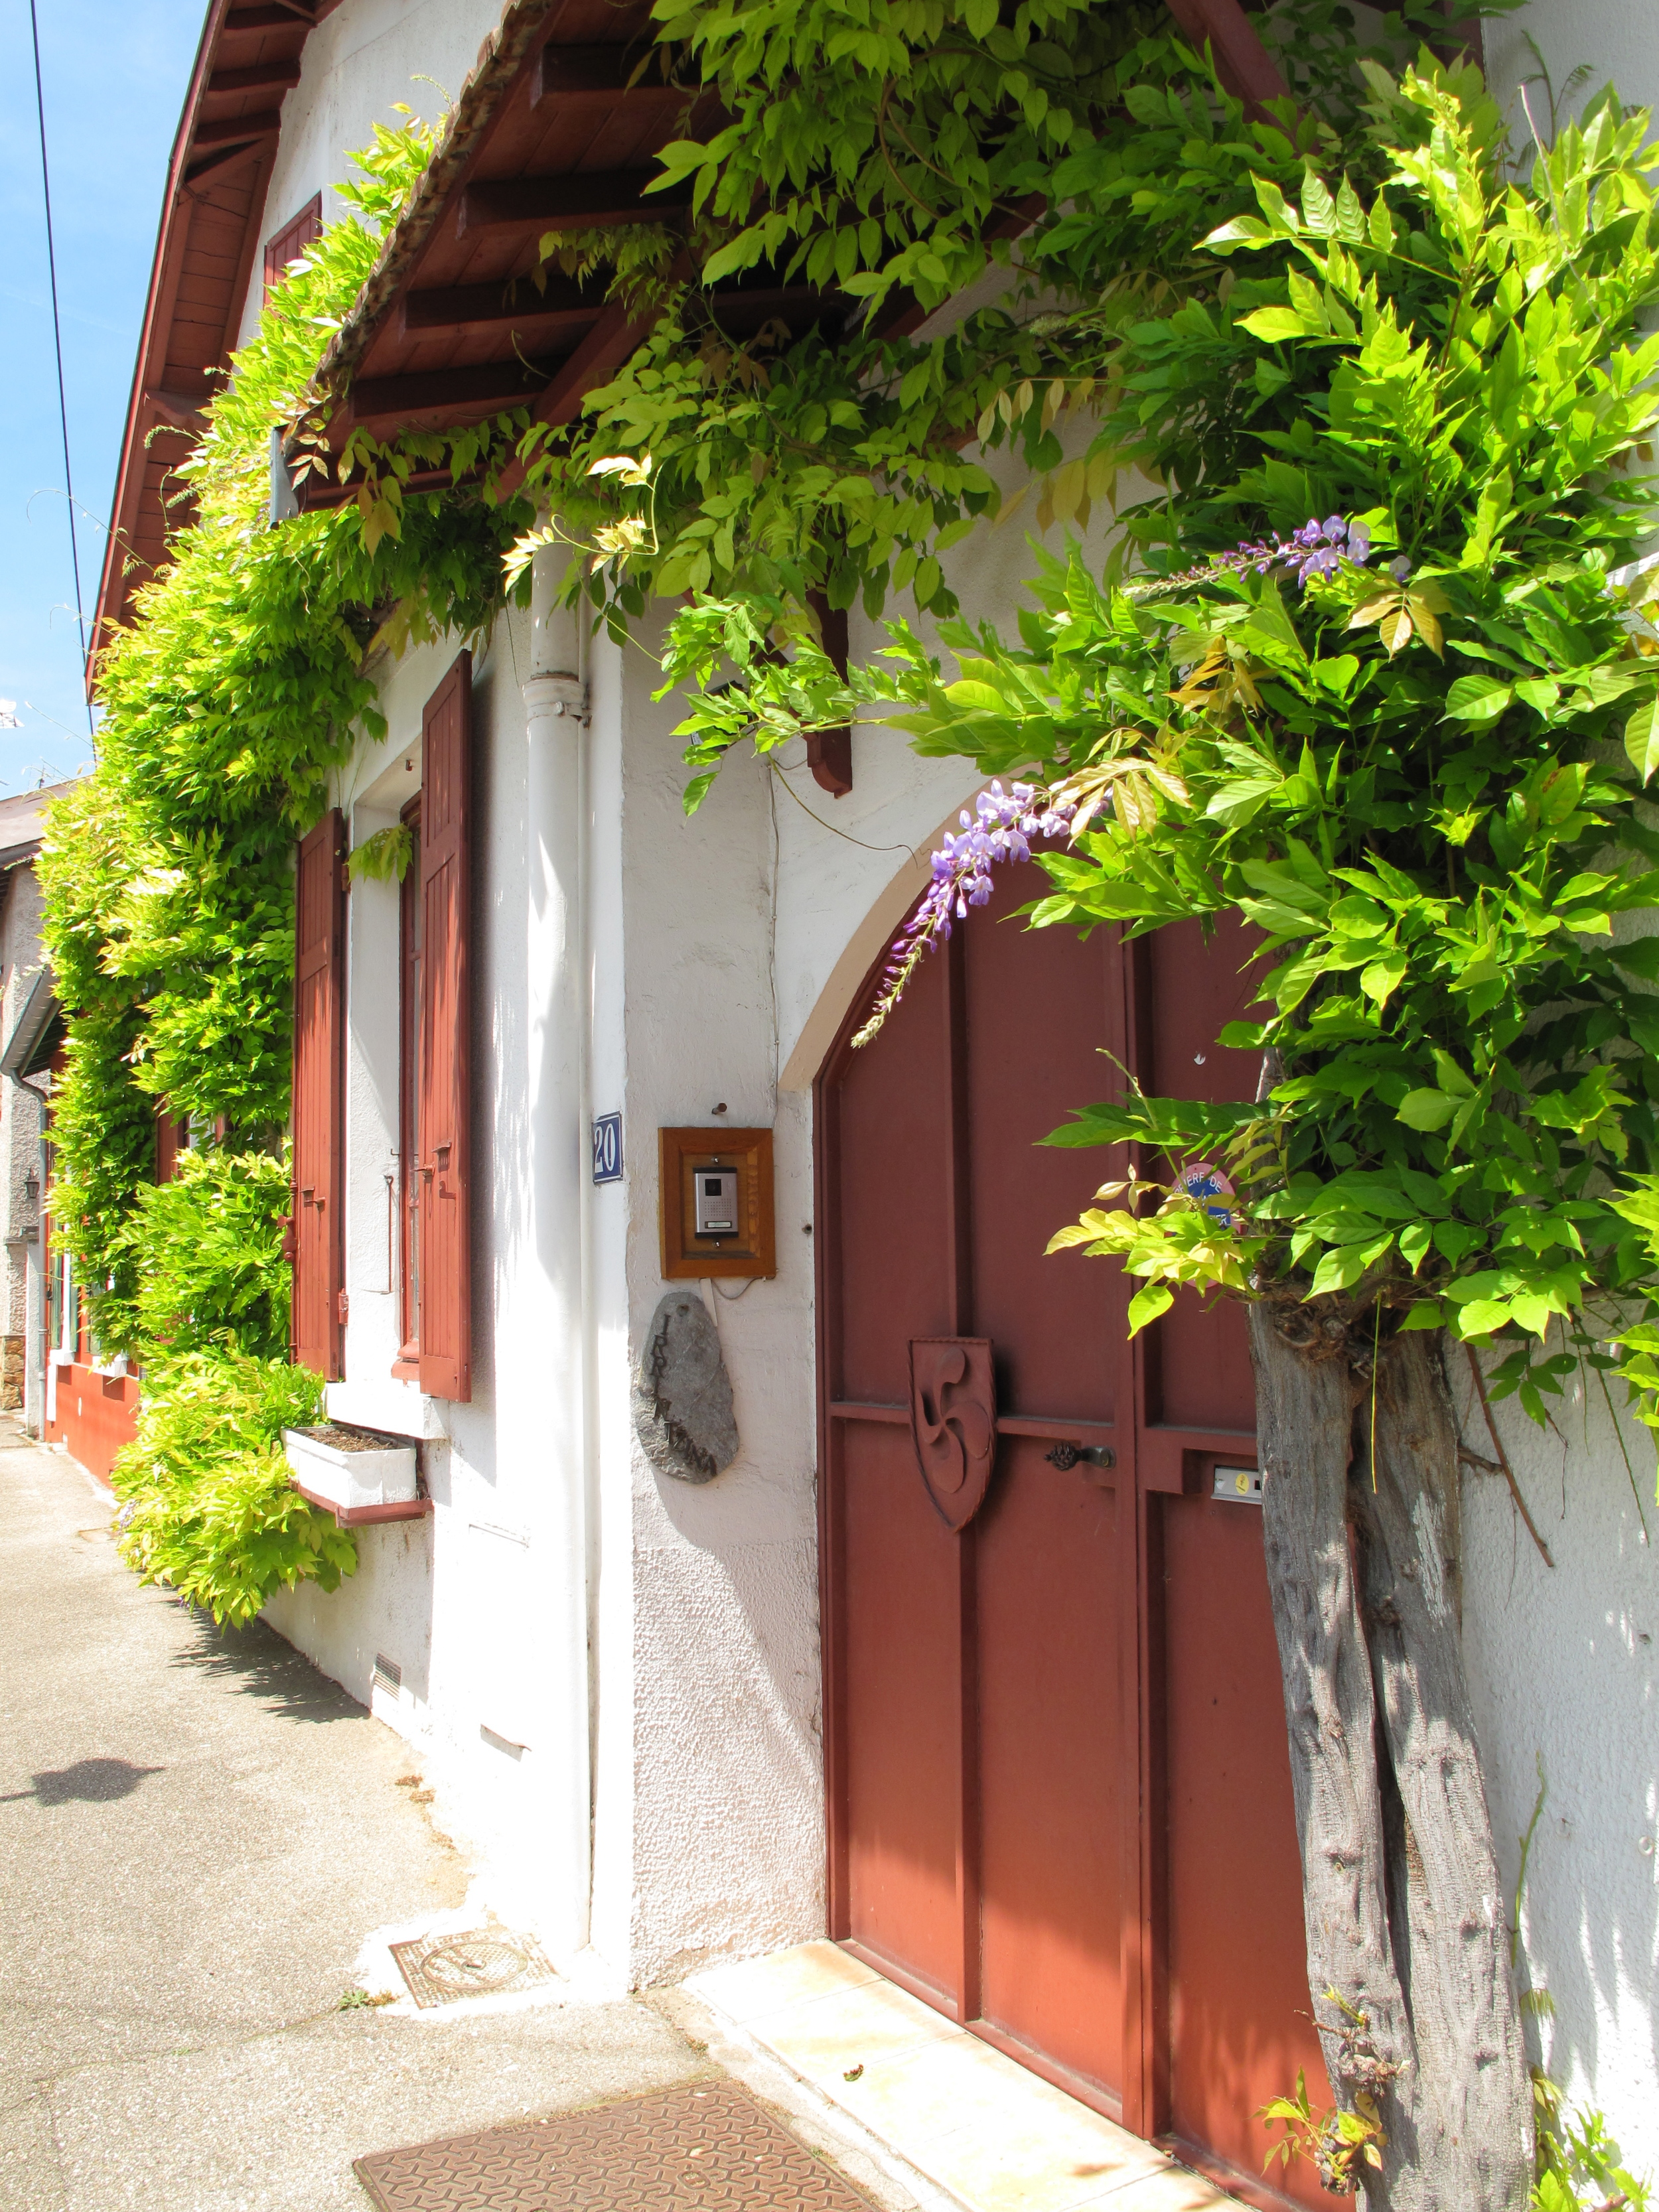 Wisteria and leaves on a white washed house in Oullins, France.